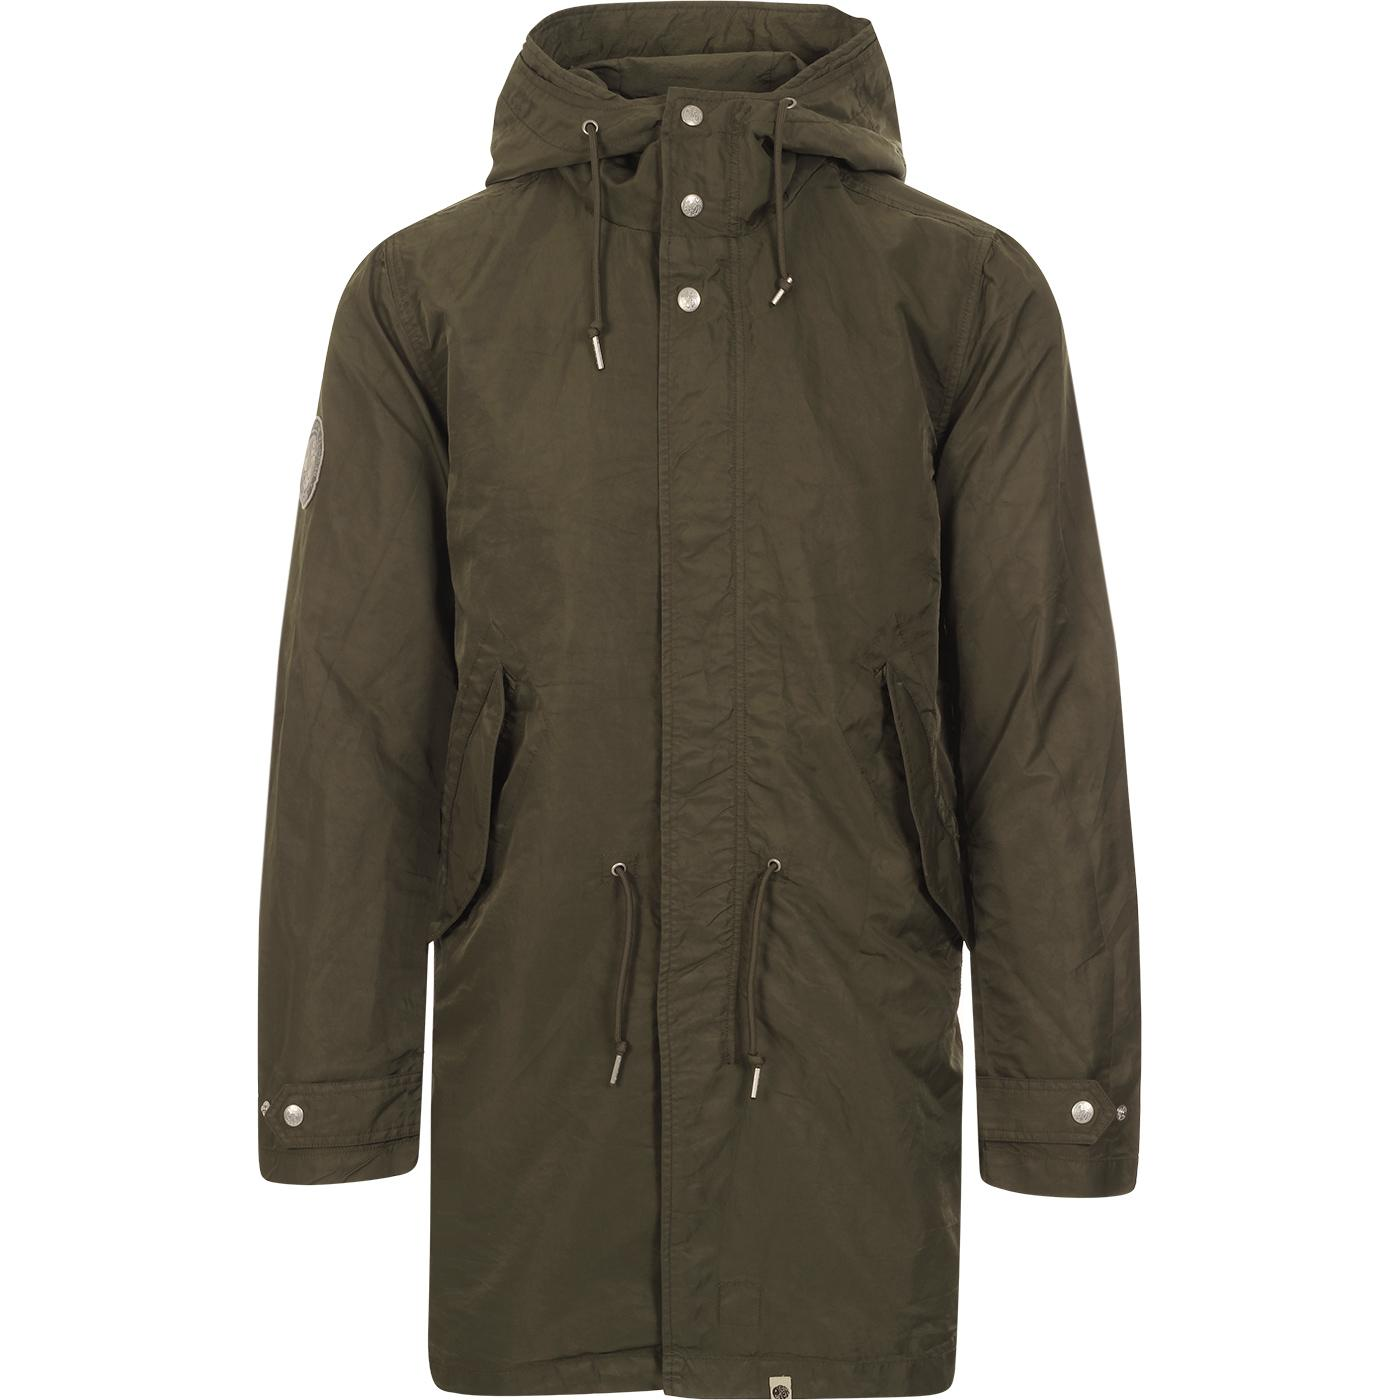 PRETTY GREEN Mod Likeminded Nylon Parka (Khaki)